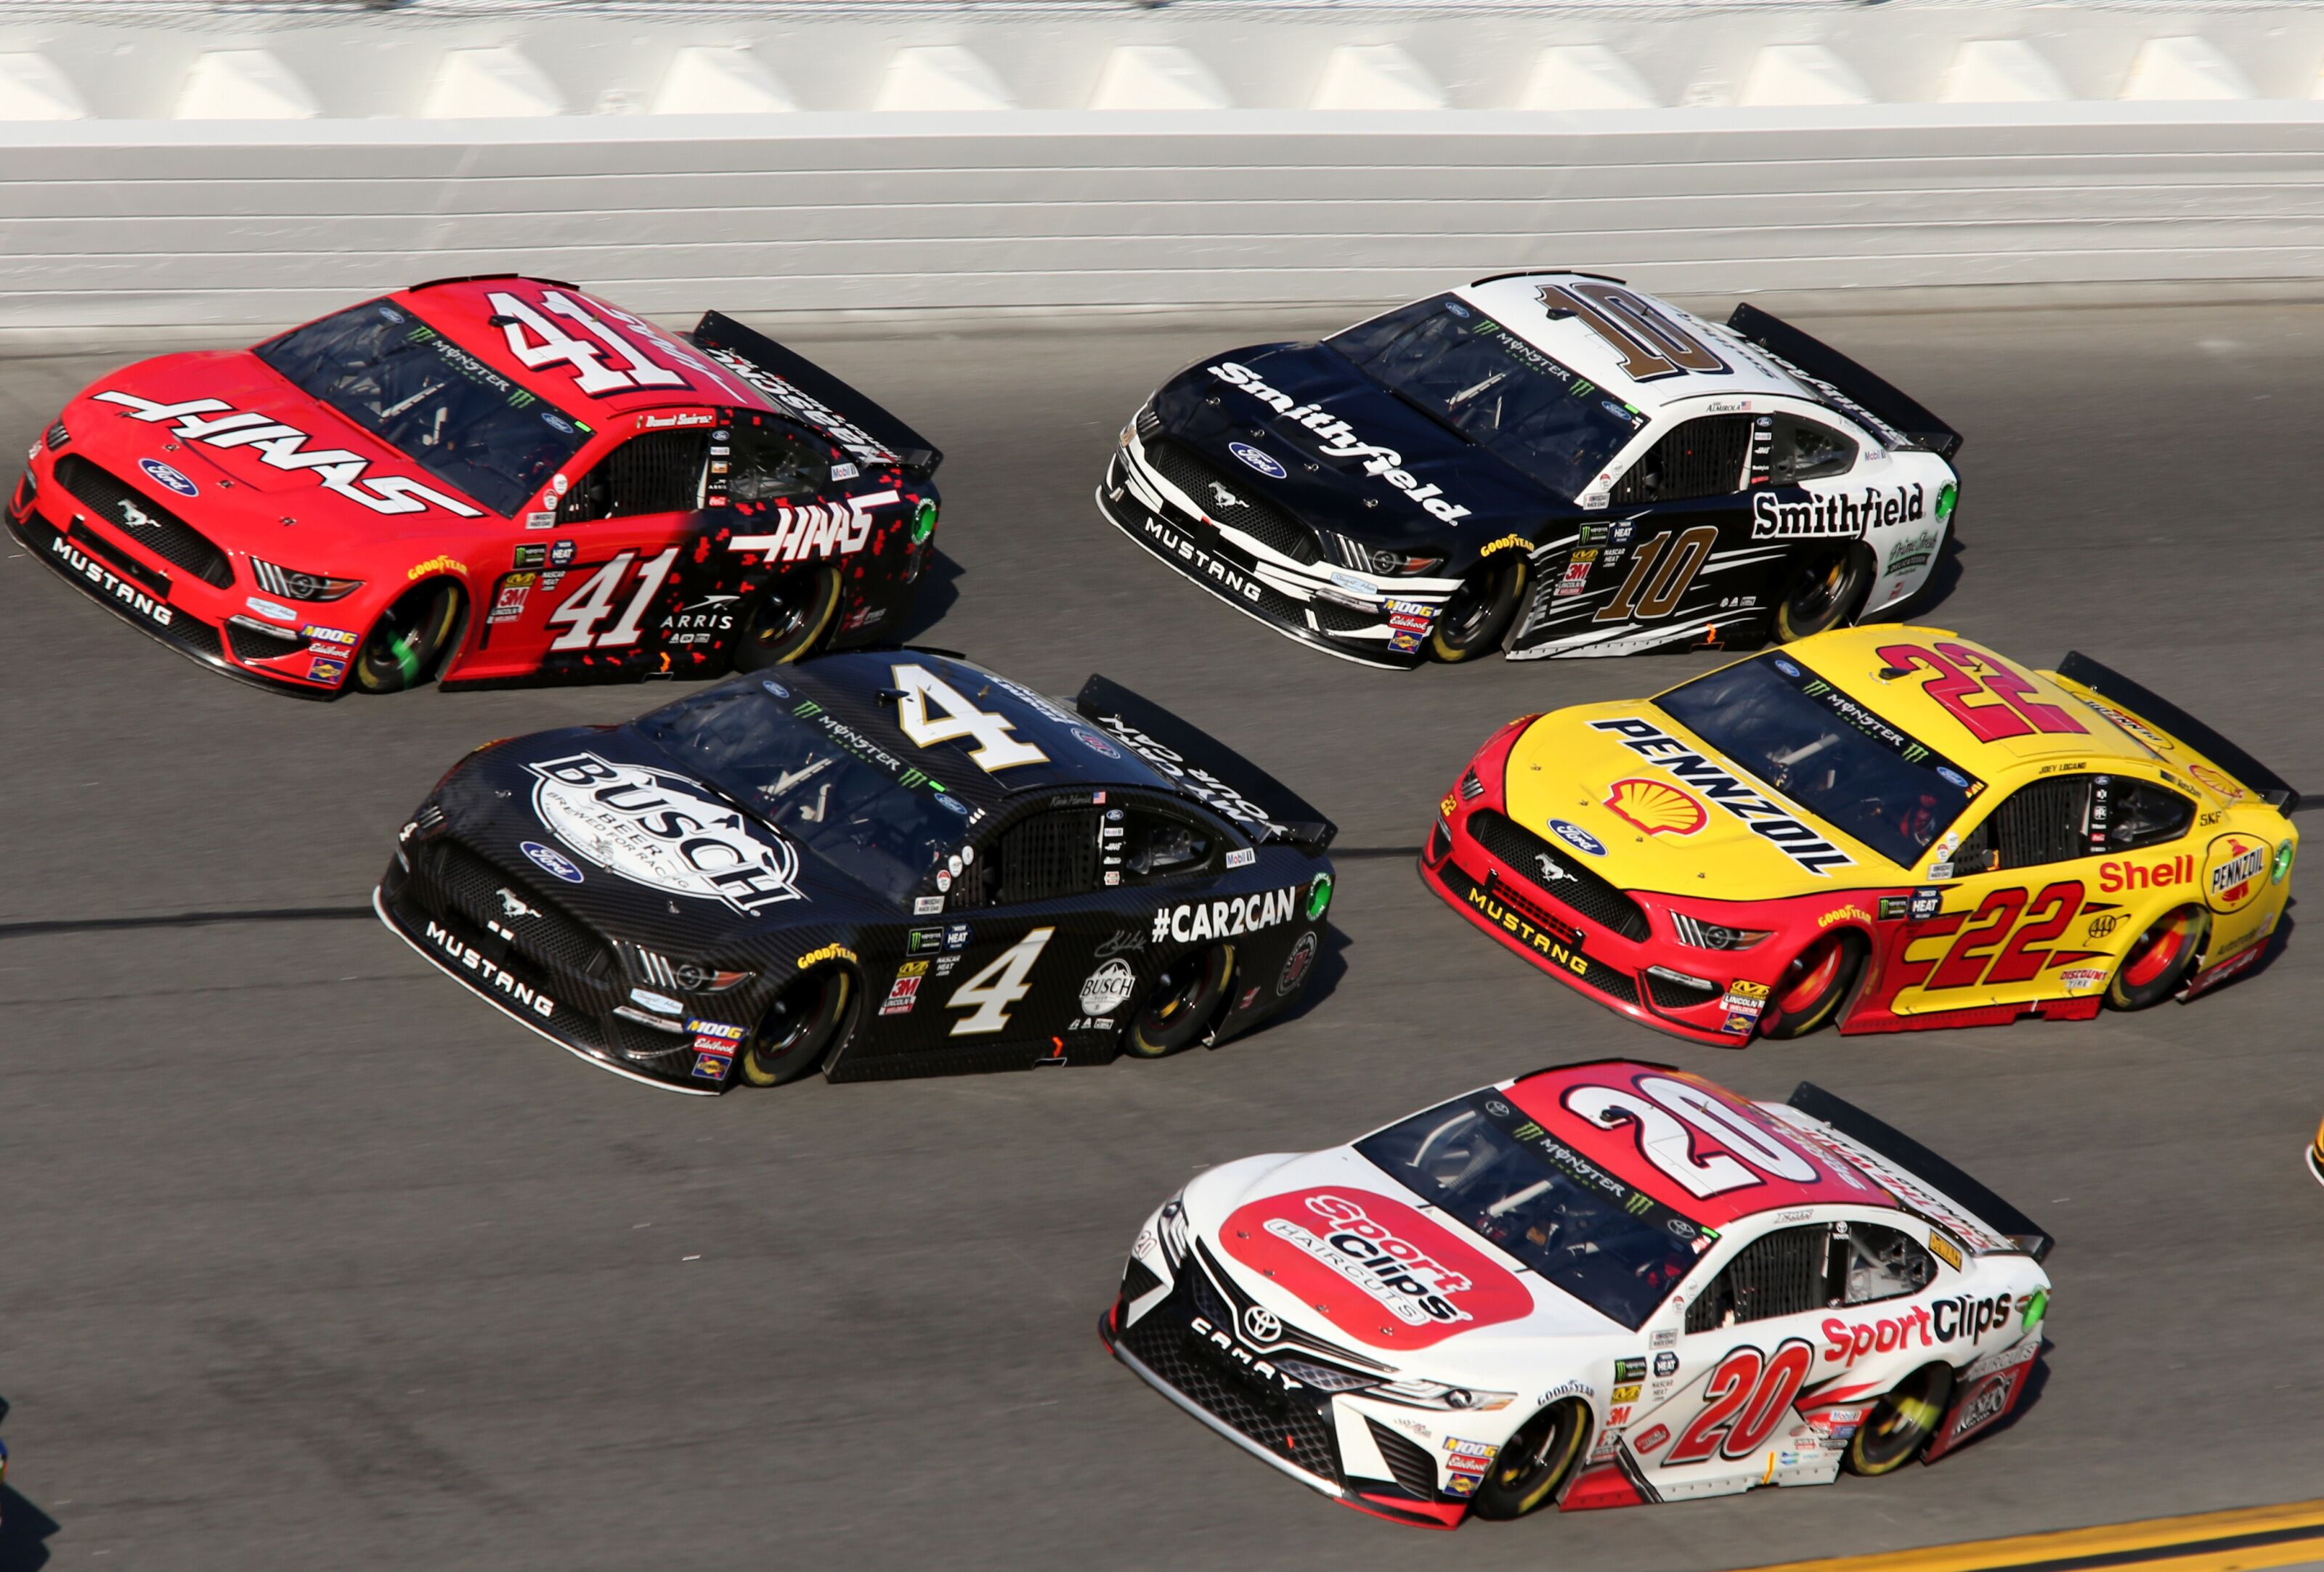 NASCAR: Updated look at the 2020 Daytona 500 entry list – Beyond the Flag